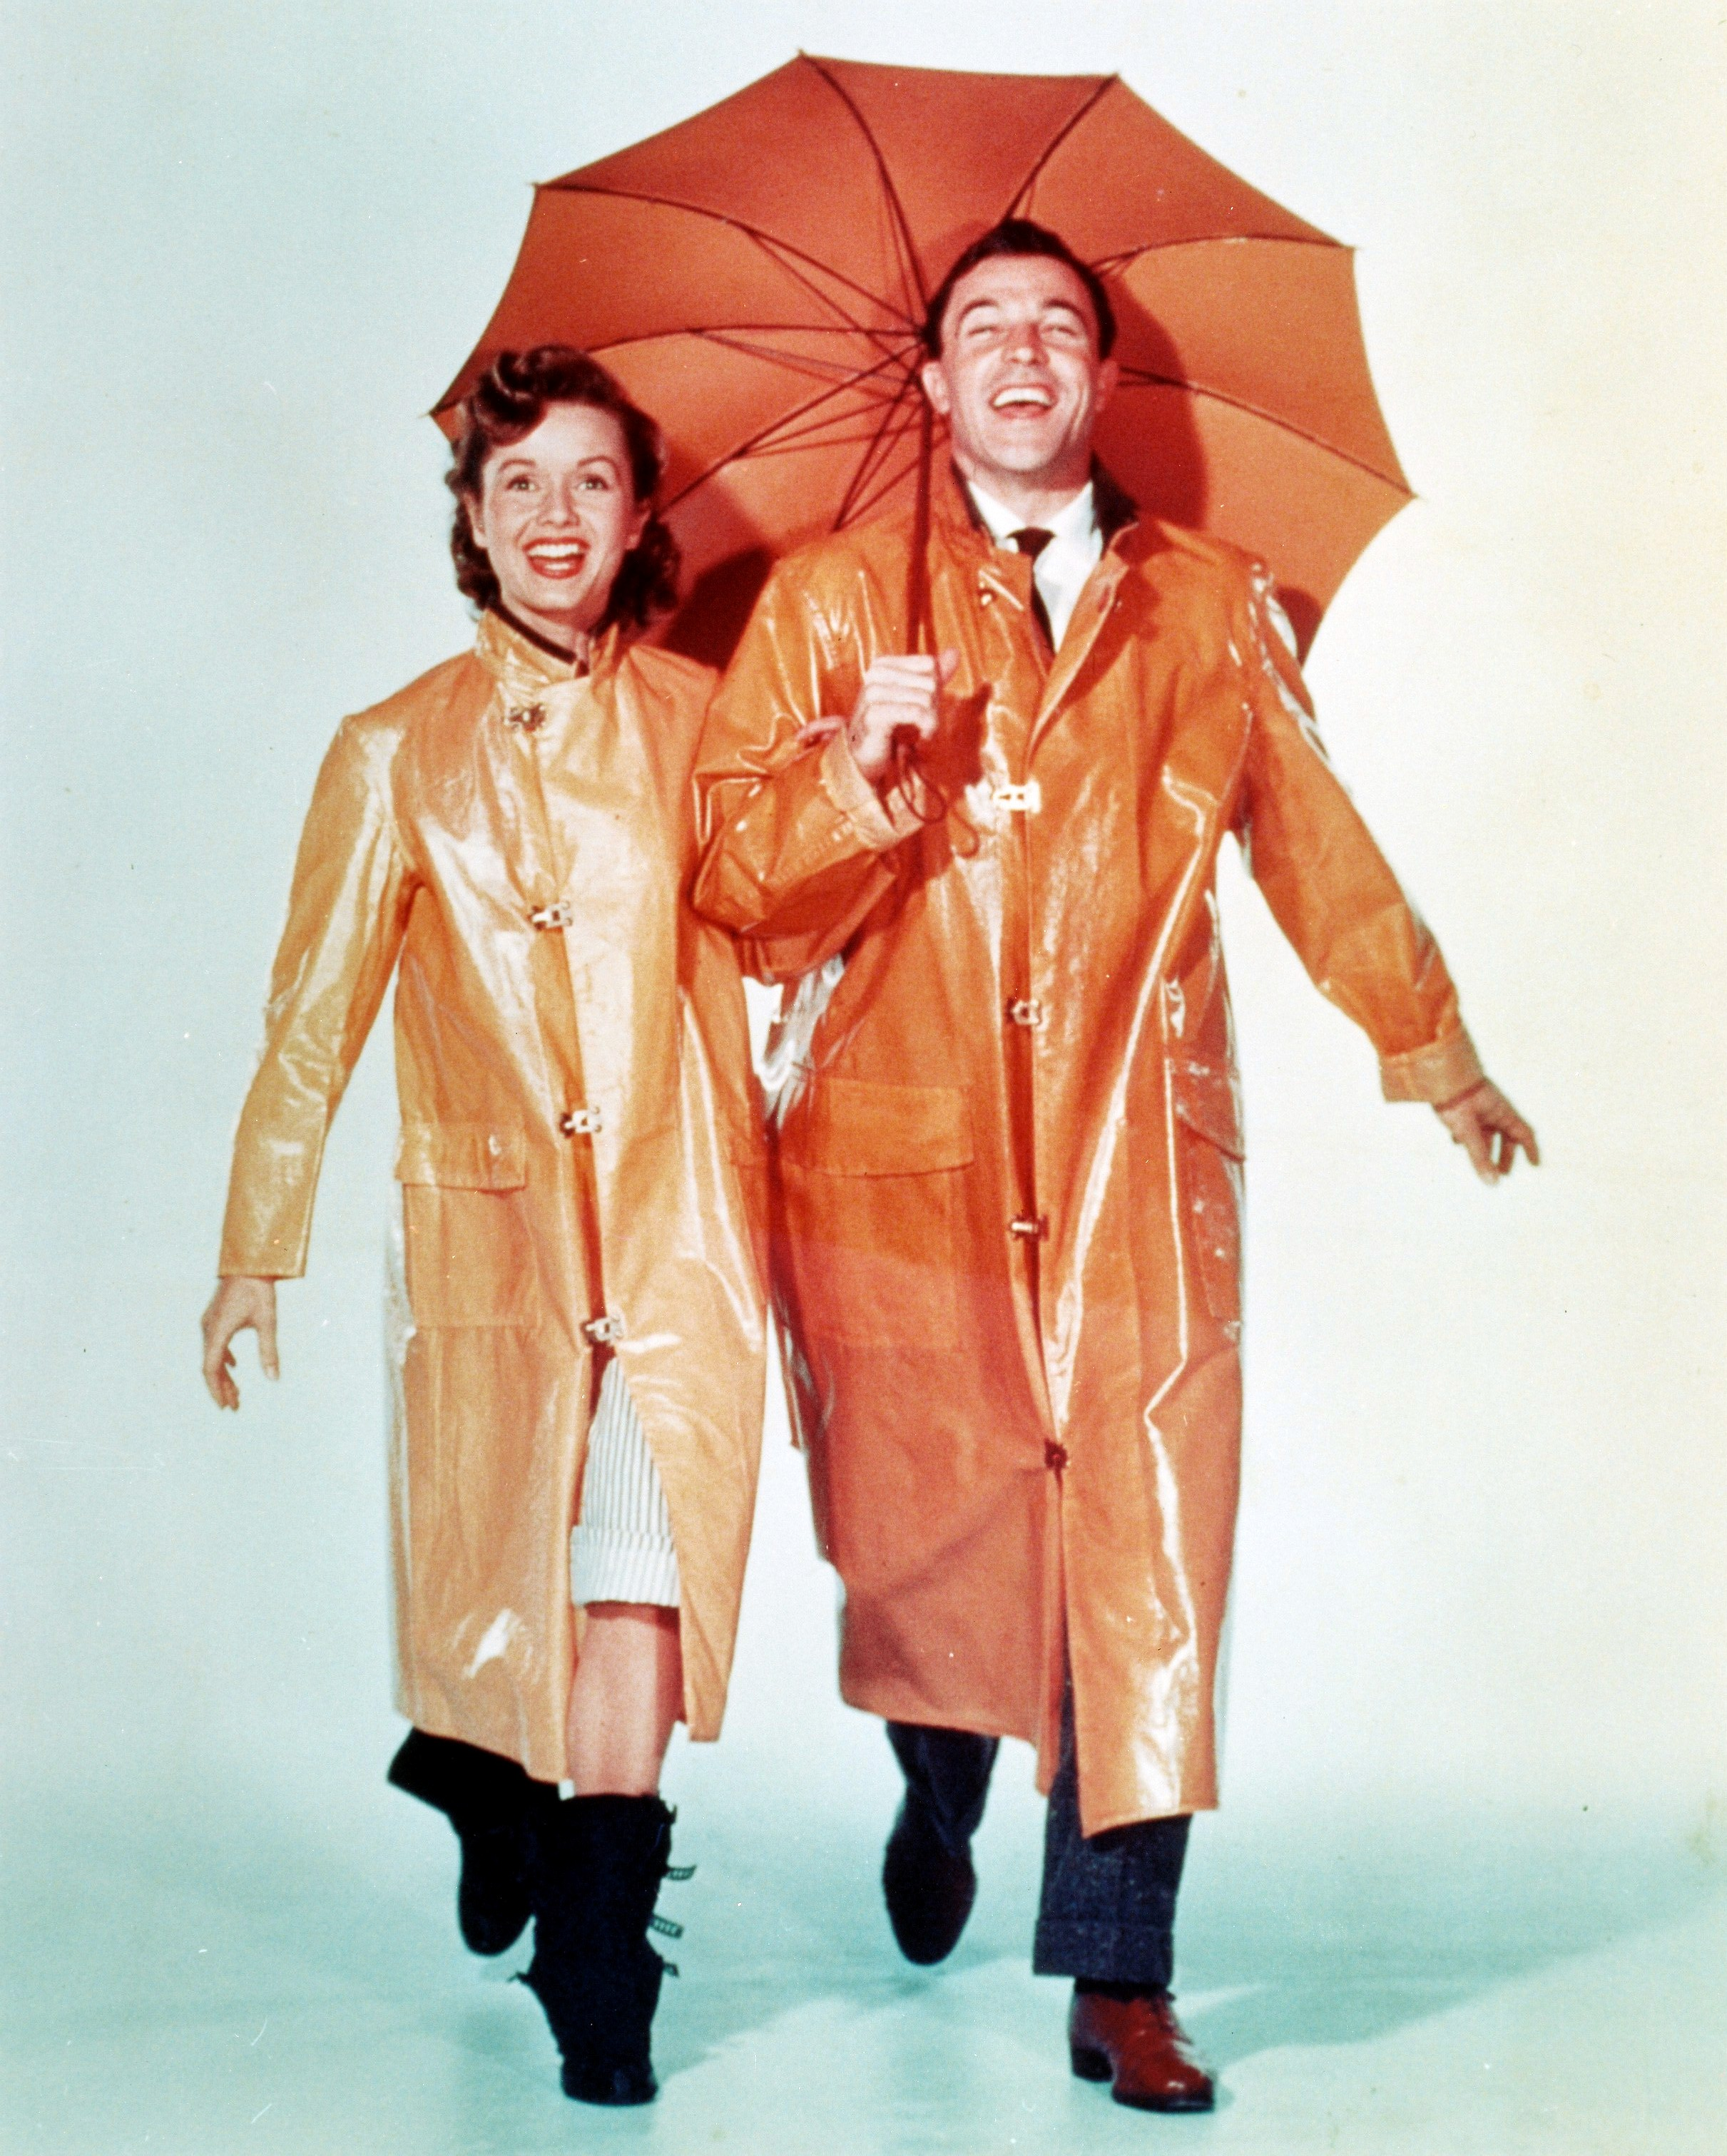 Debbie Reynolds in Singing in the Rain.